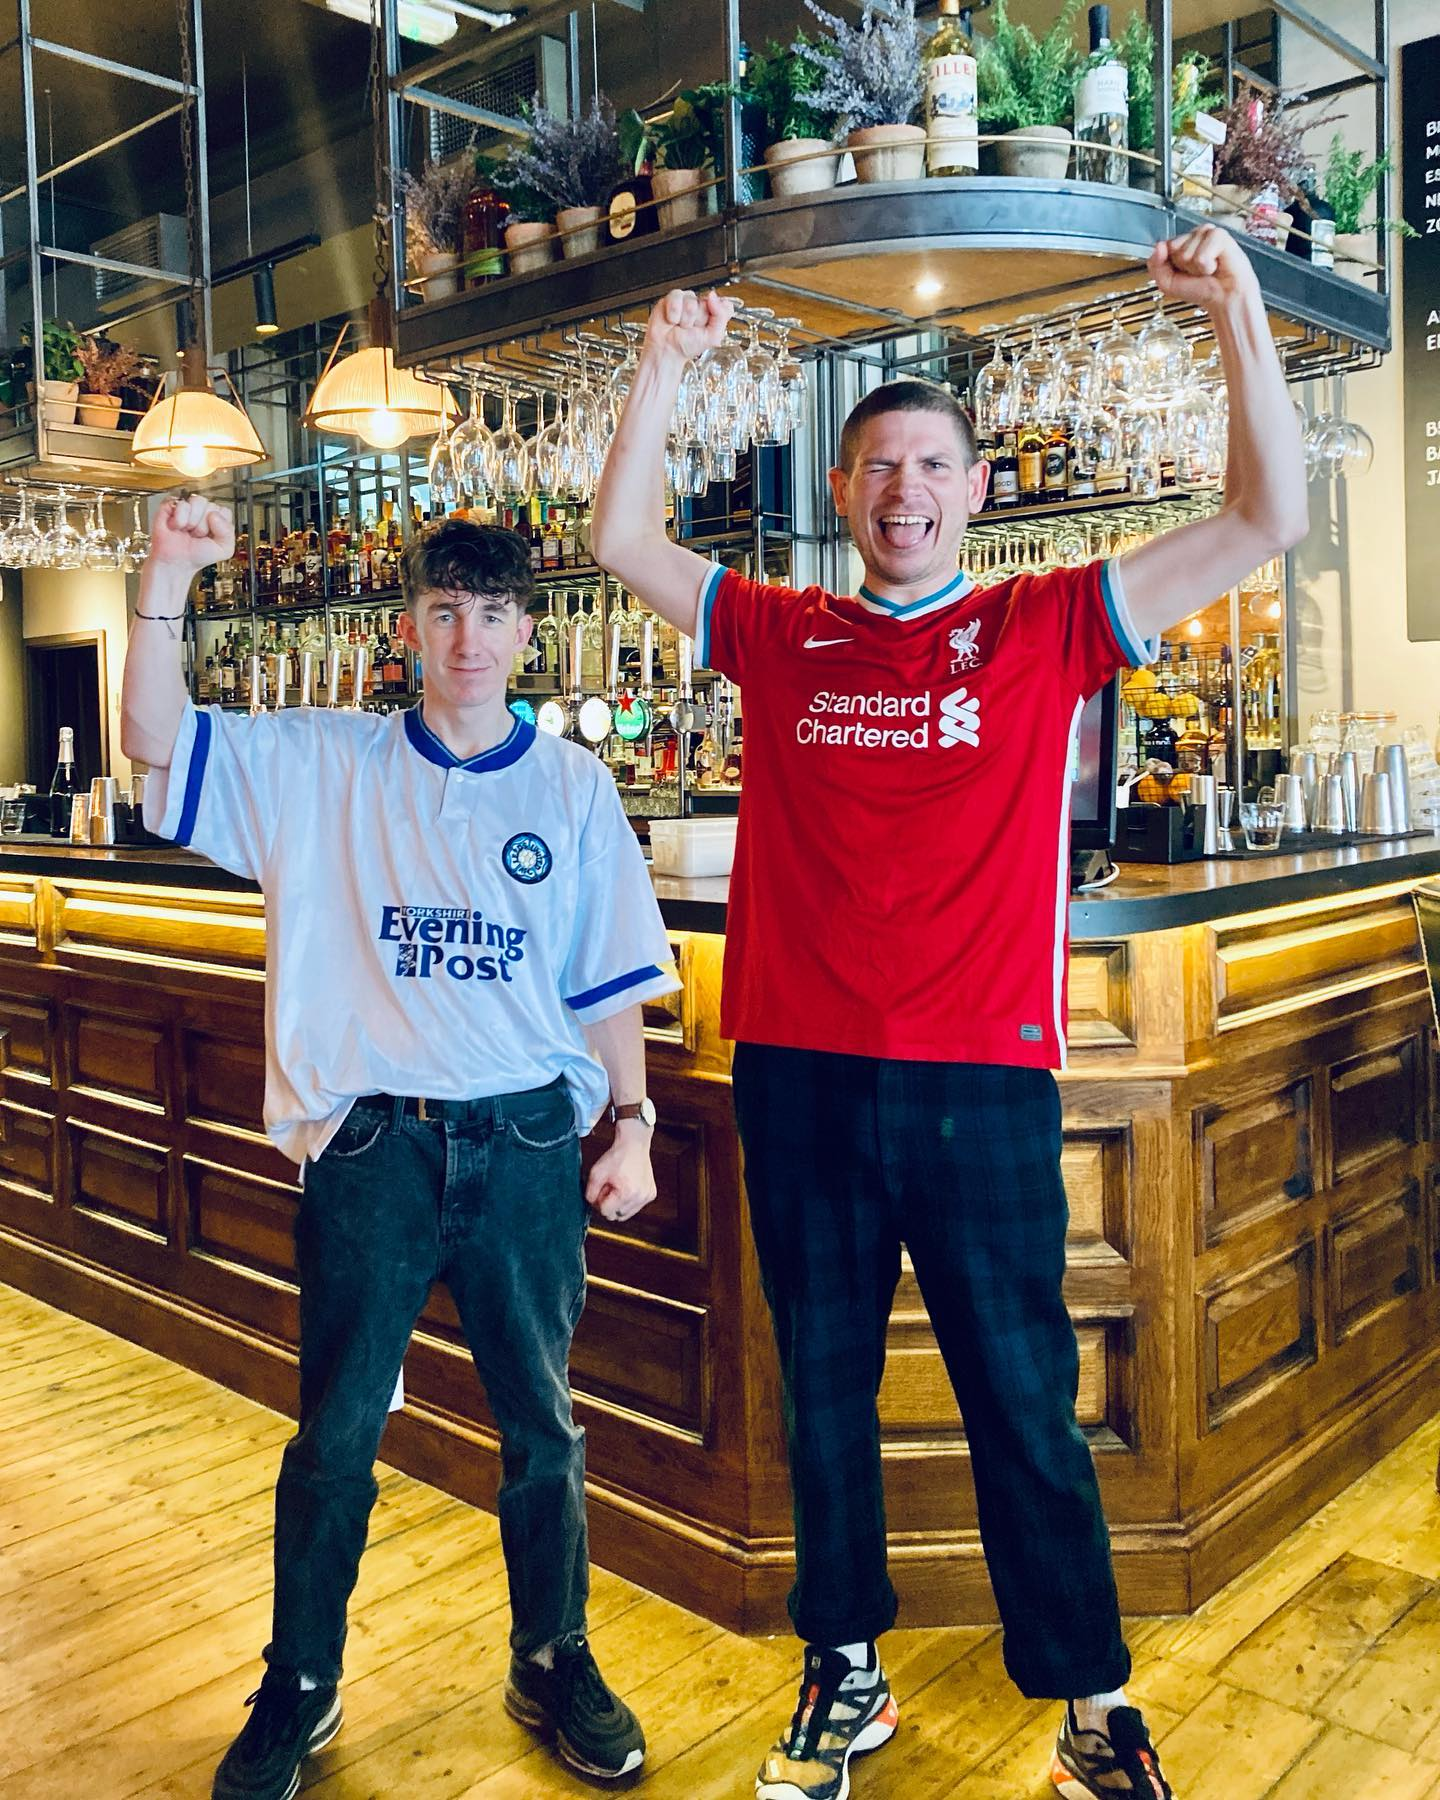 HERE WE GO. 🎉🍻 Got a good idea who Henry & Toby are going to be supporting today…⚽️😅 . Same as usual plenty of walk-in space left for all games, just get down here early and bag your spot.   #standupifyouhatemanu 😘 .#shoreditch #london #east #eastlondon #cocktials #premierleague #manu #leeds #liverpool #craftbeer #football #livesport #bigscreen